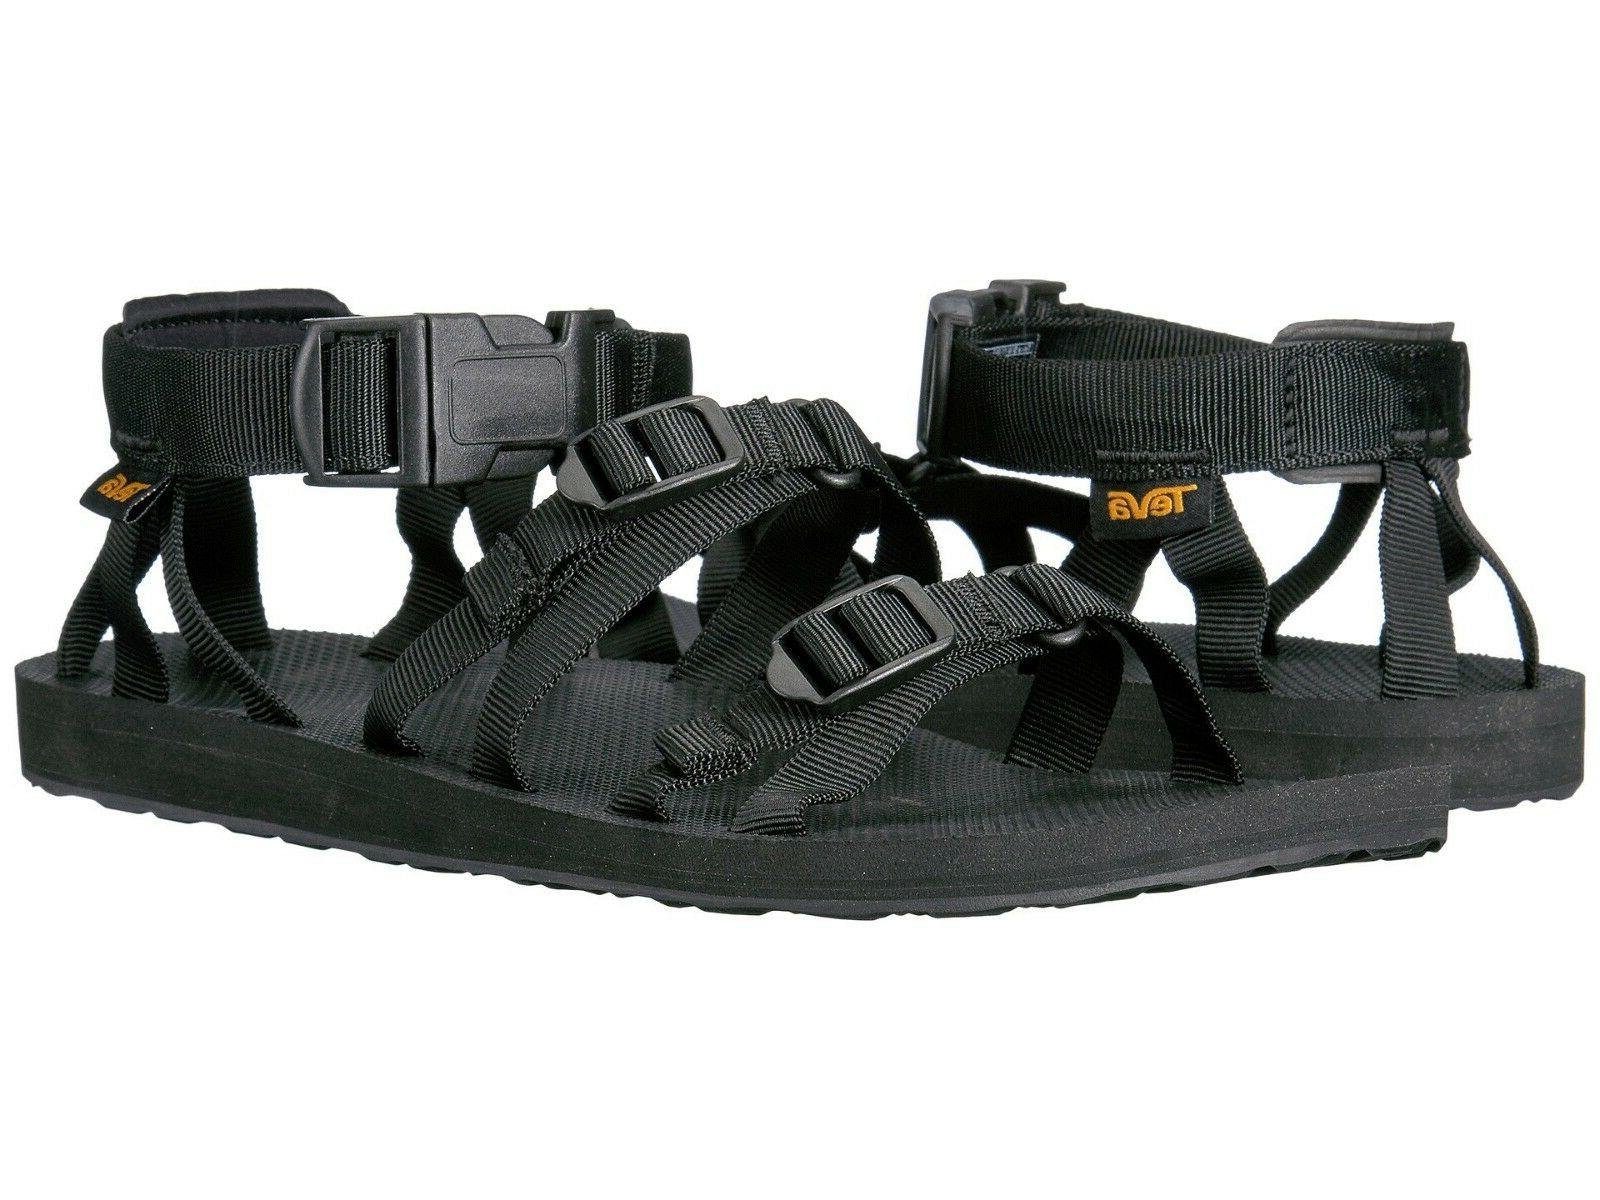 Teva Men's Alp 101584 - Sport Water Ready Sandals Black Size